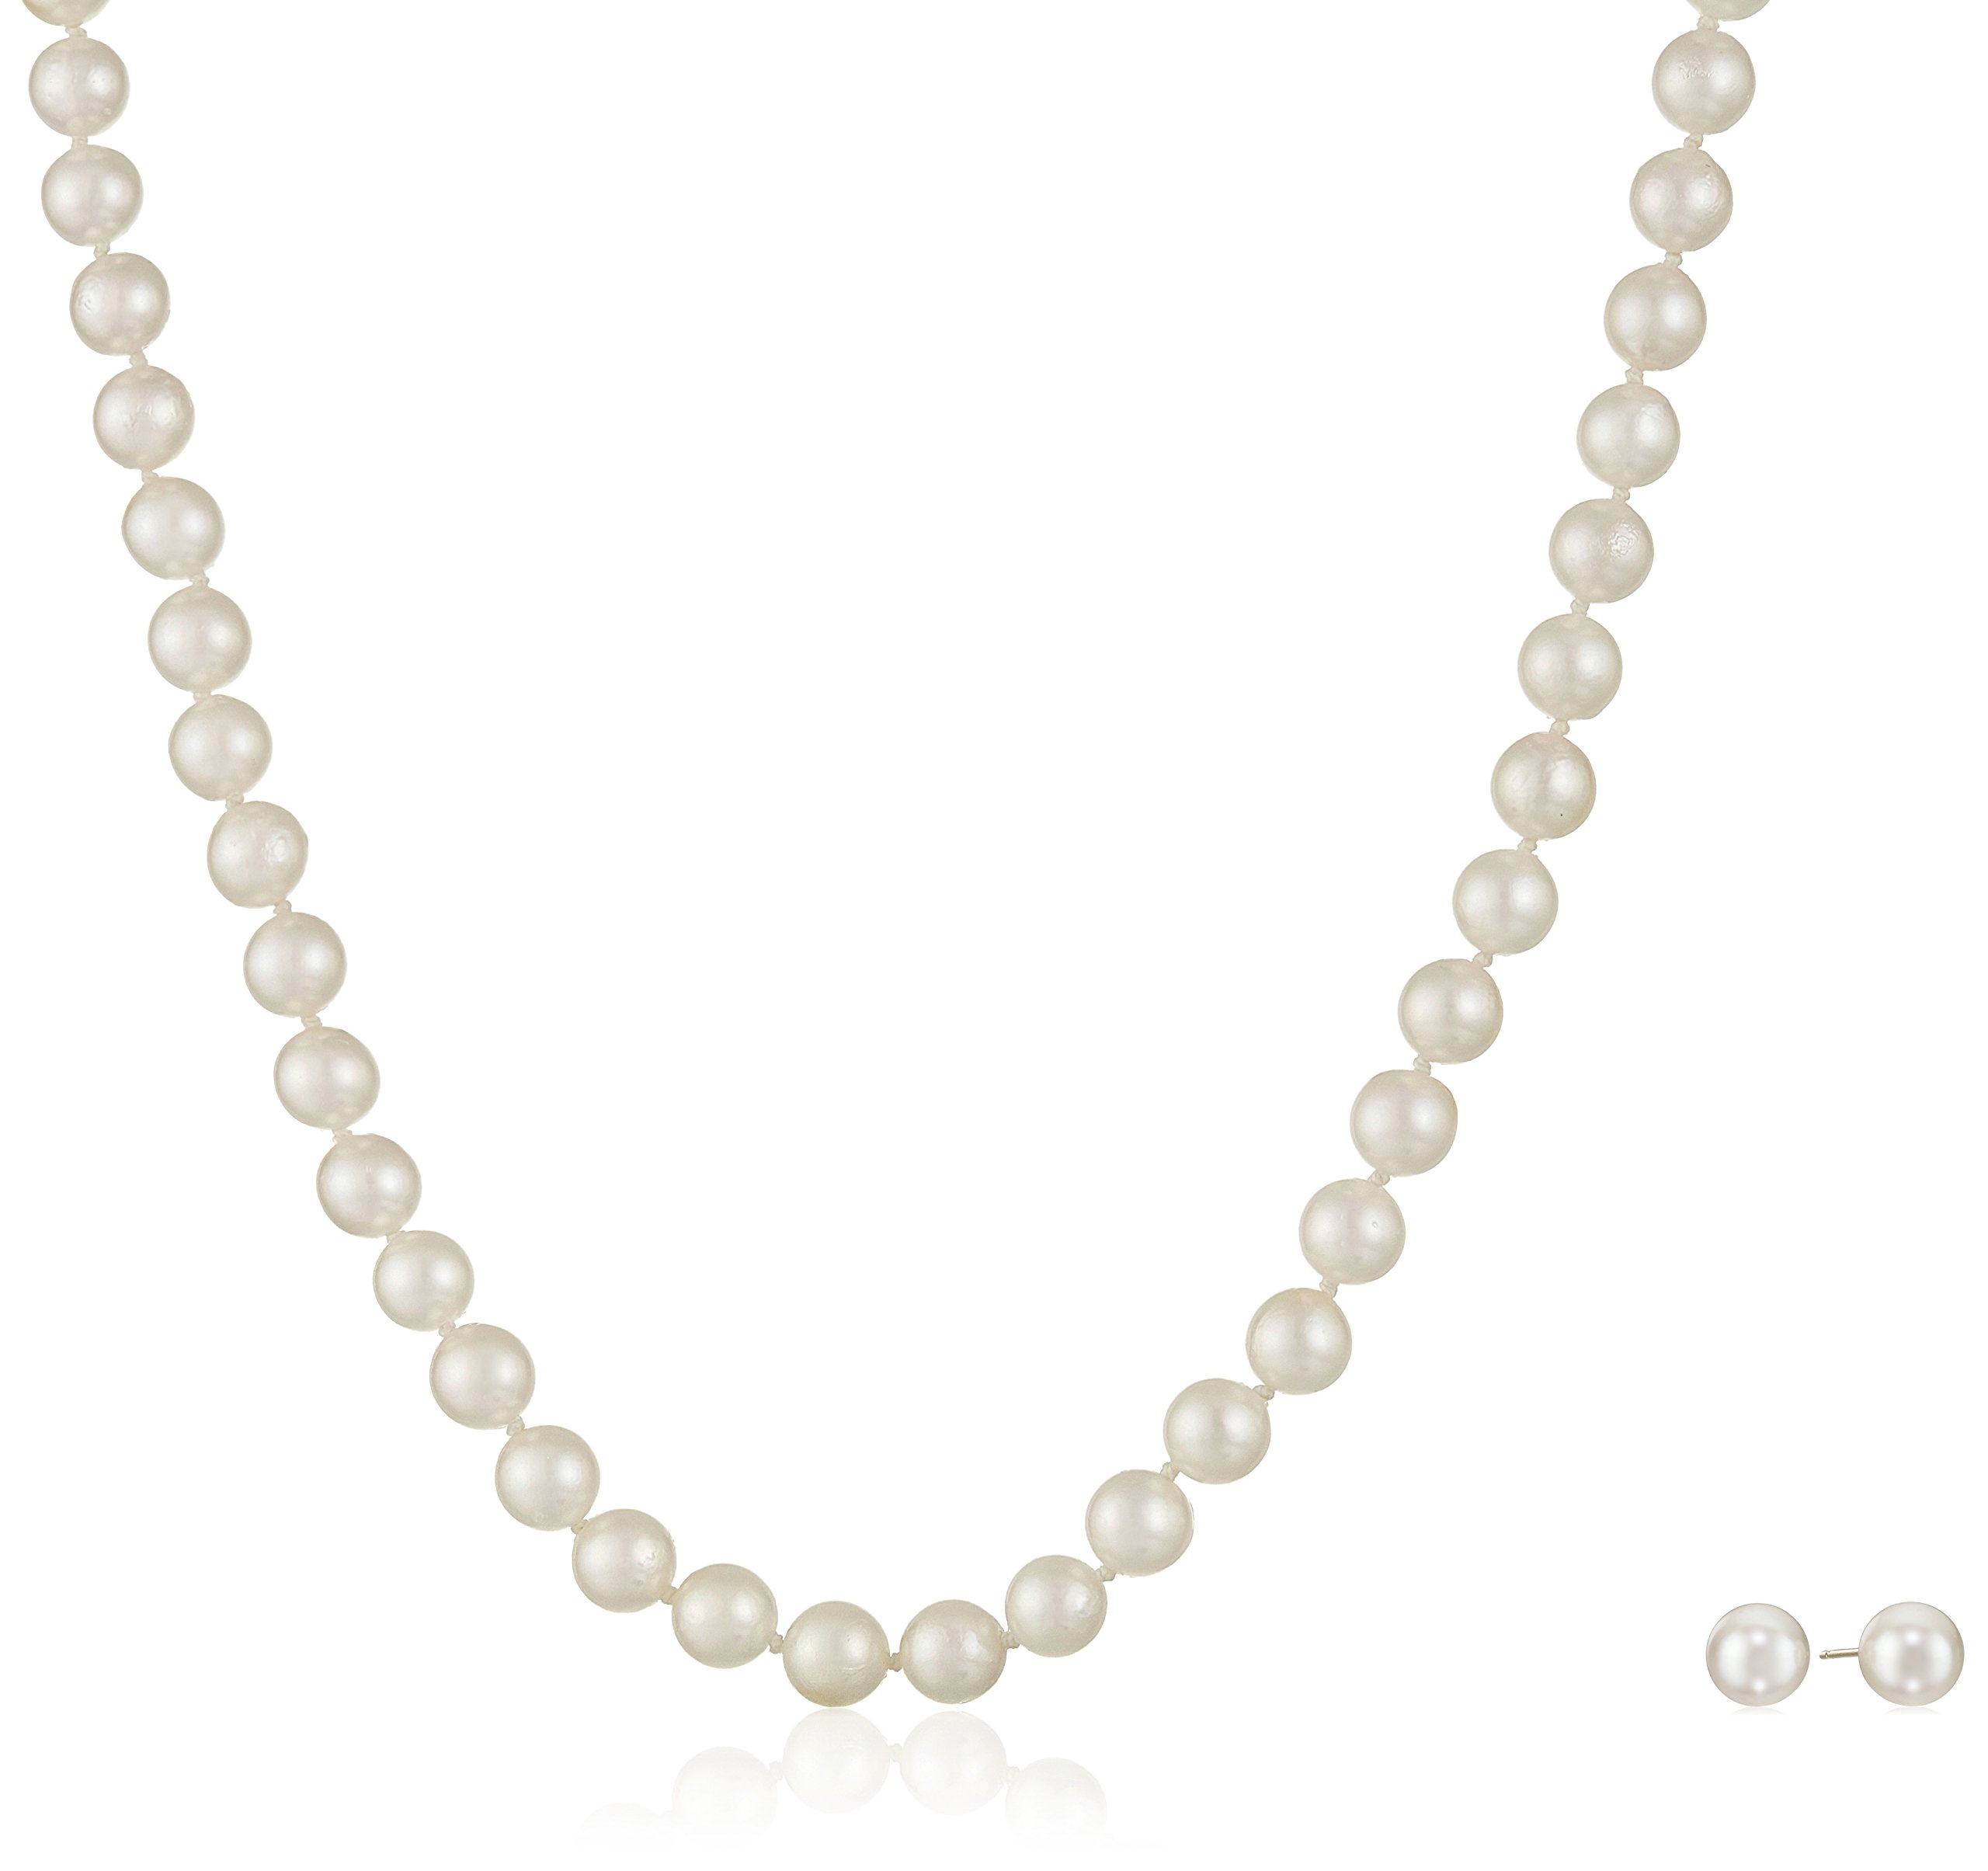 14k Yellow Gold Akoya Cultured Pearl Necklace and Stud Earring Set (6.5-7mm)